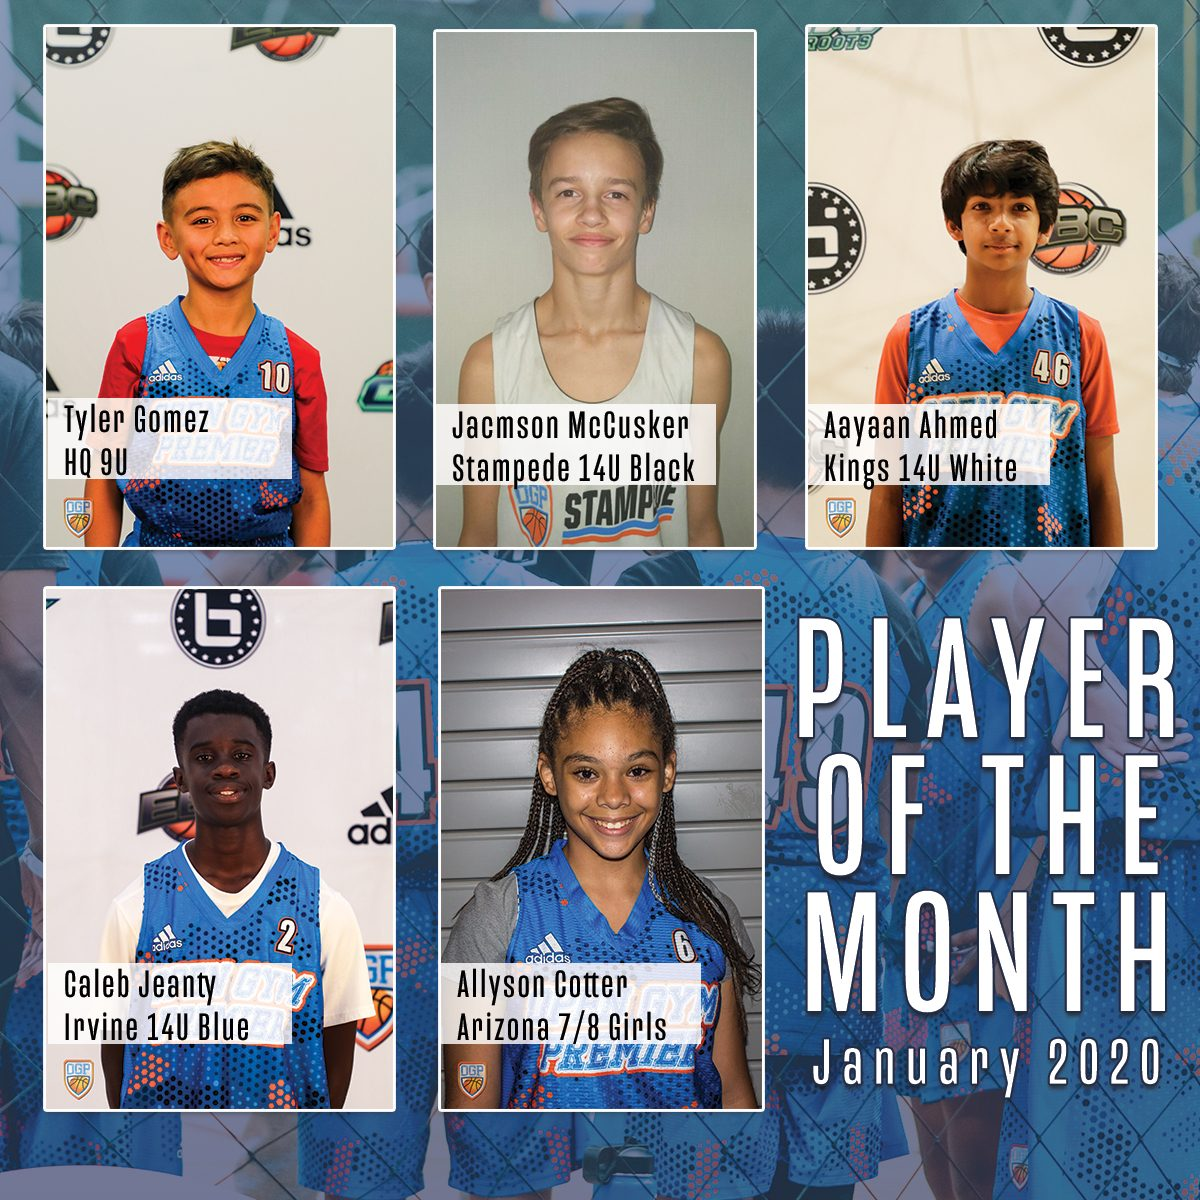 Player of the Month